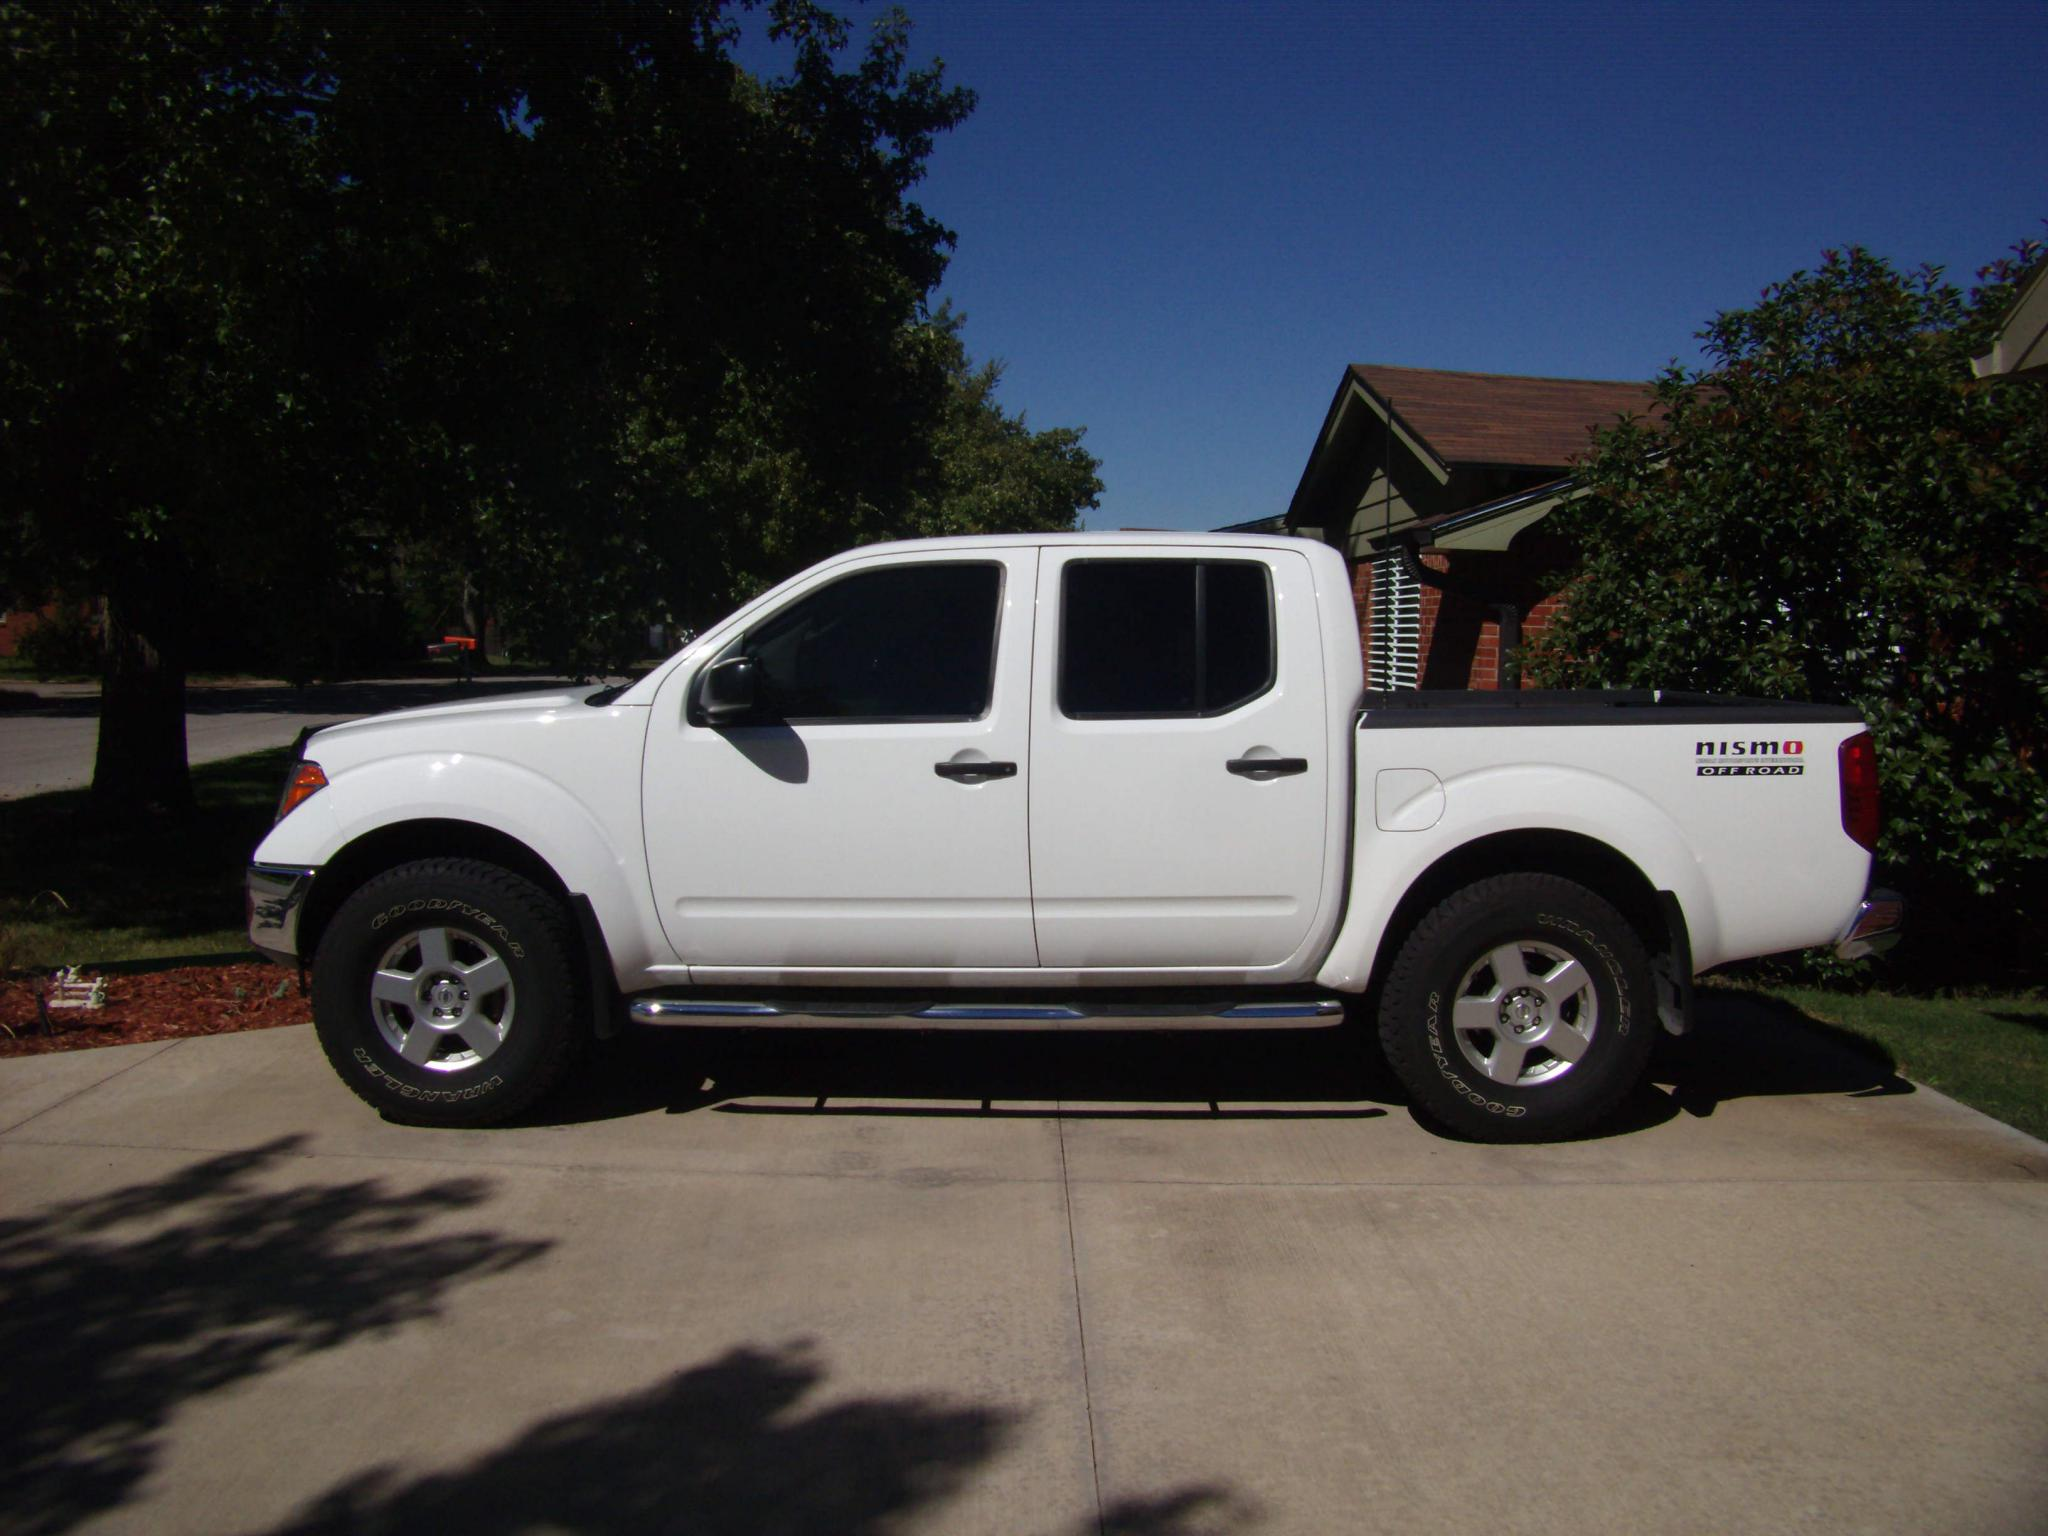 2005 Chevy Colorado Crew Cab 2012 nissan frontier leveling kit Car Tuning